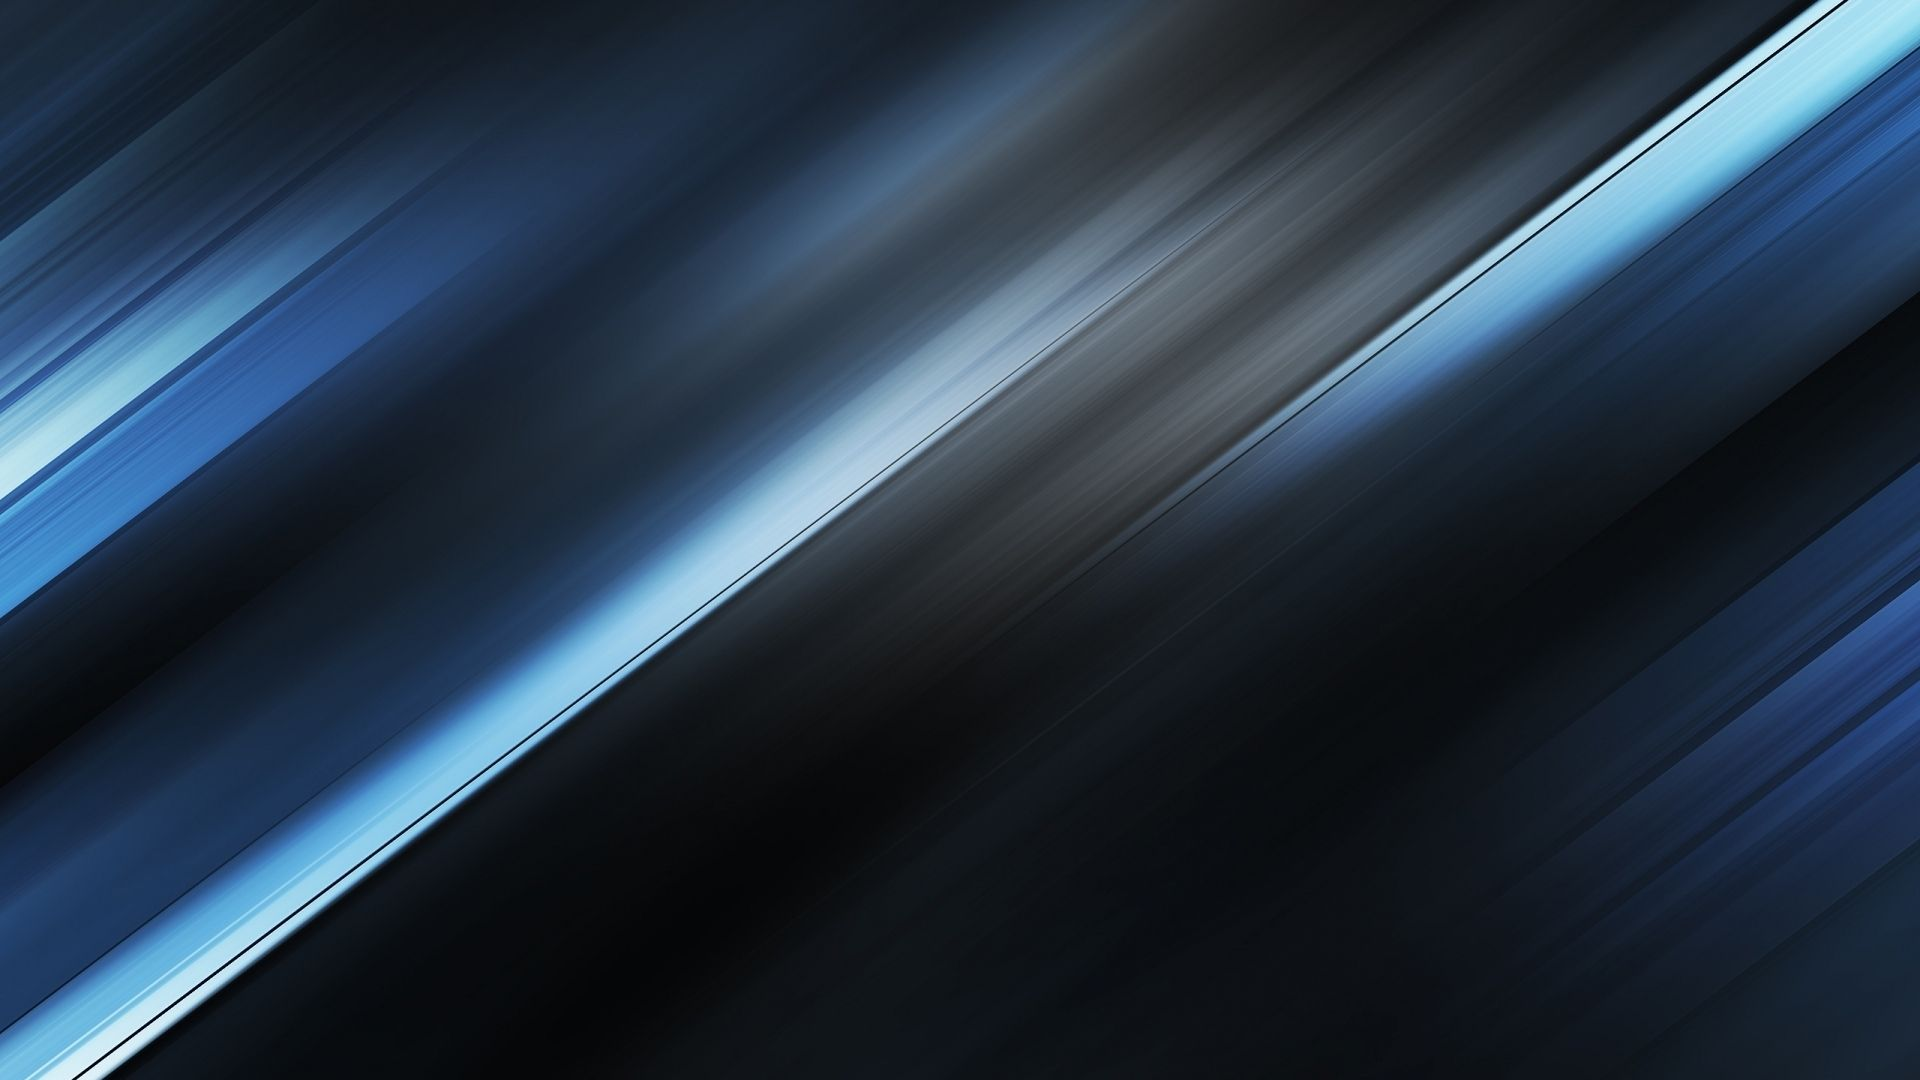 A Unique HD Background Of A Cool Blue And Black Liquid Effect